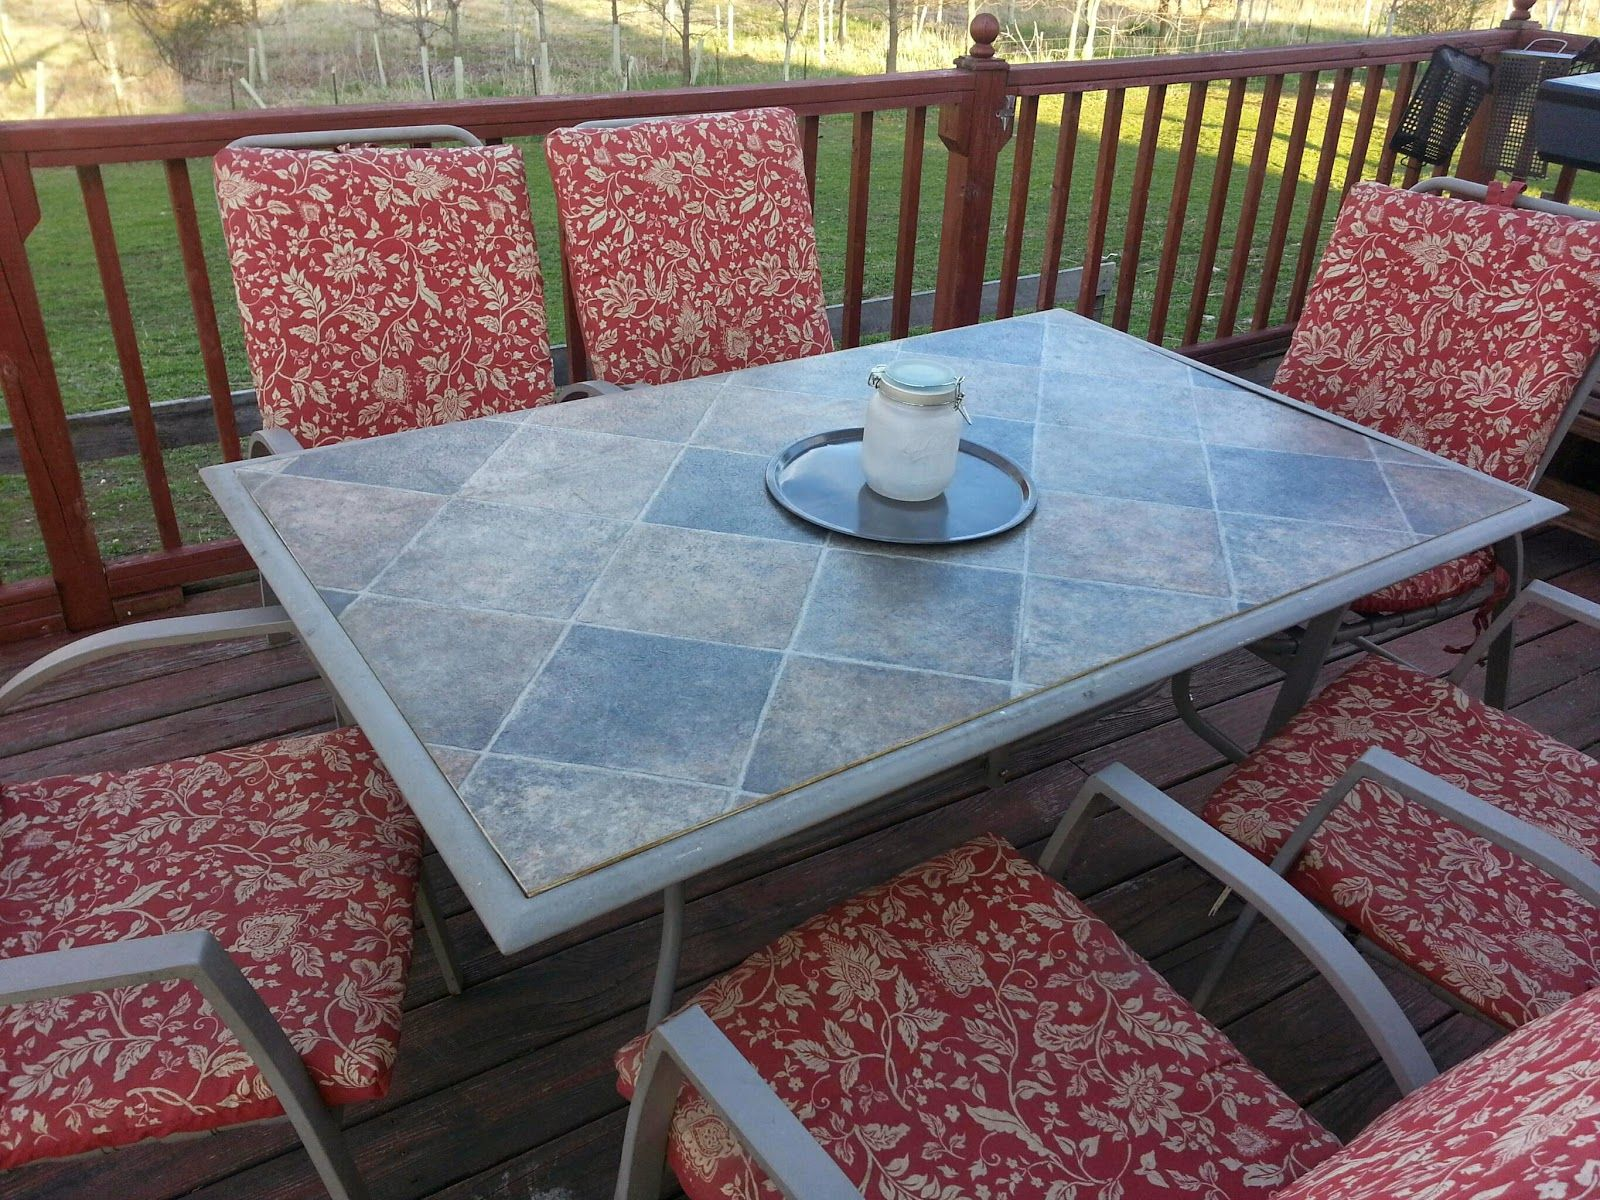 Outdoor table top ideas - Replacing The Broken Glass On Our Patio Table With A Linoleum Remnant Plywood Http